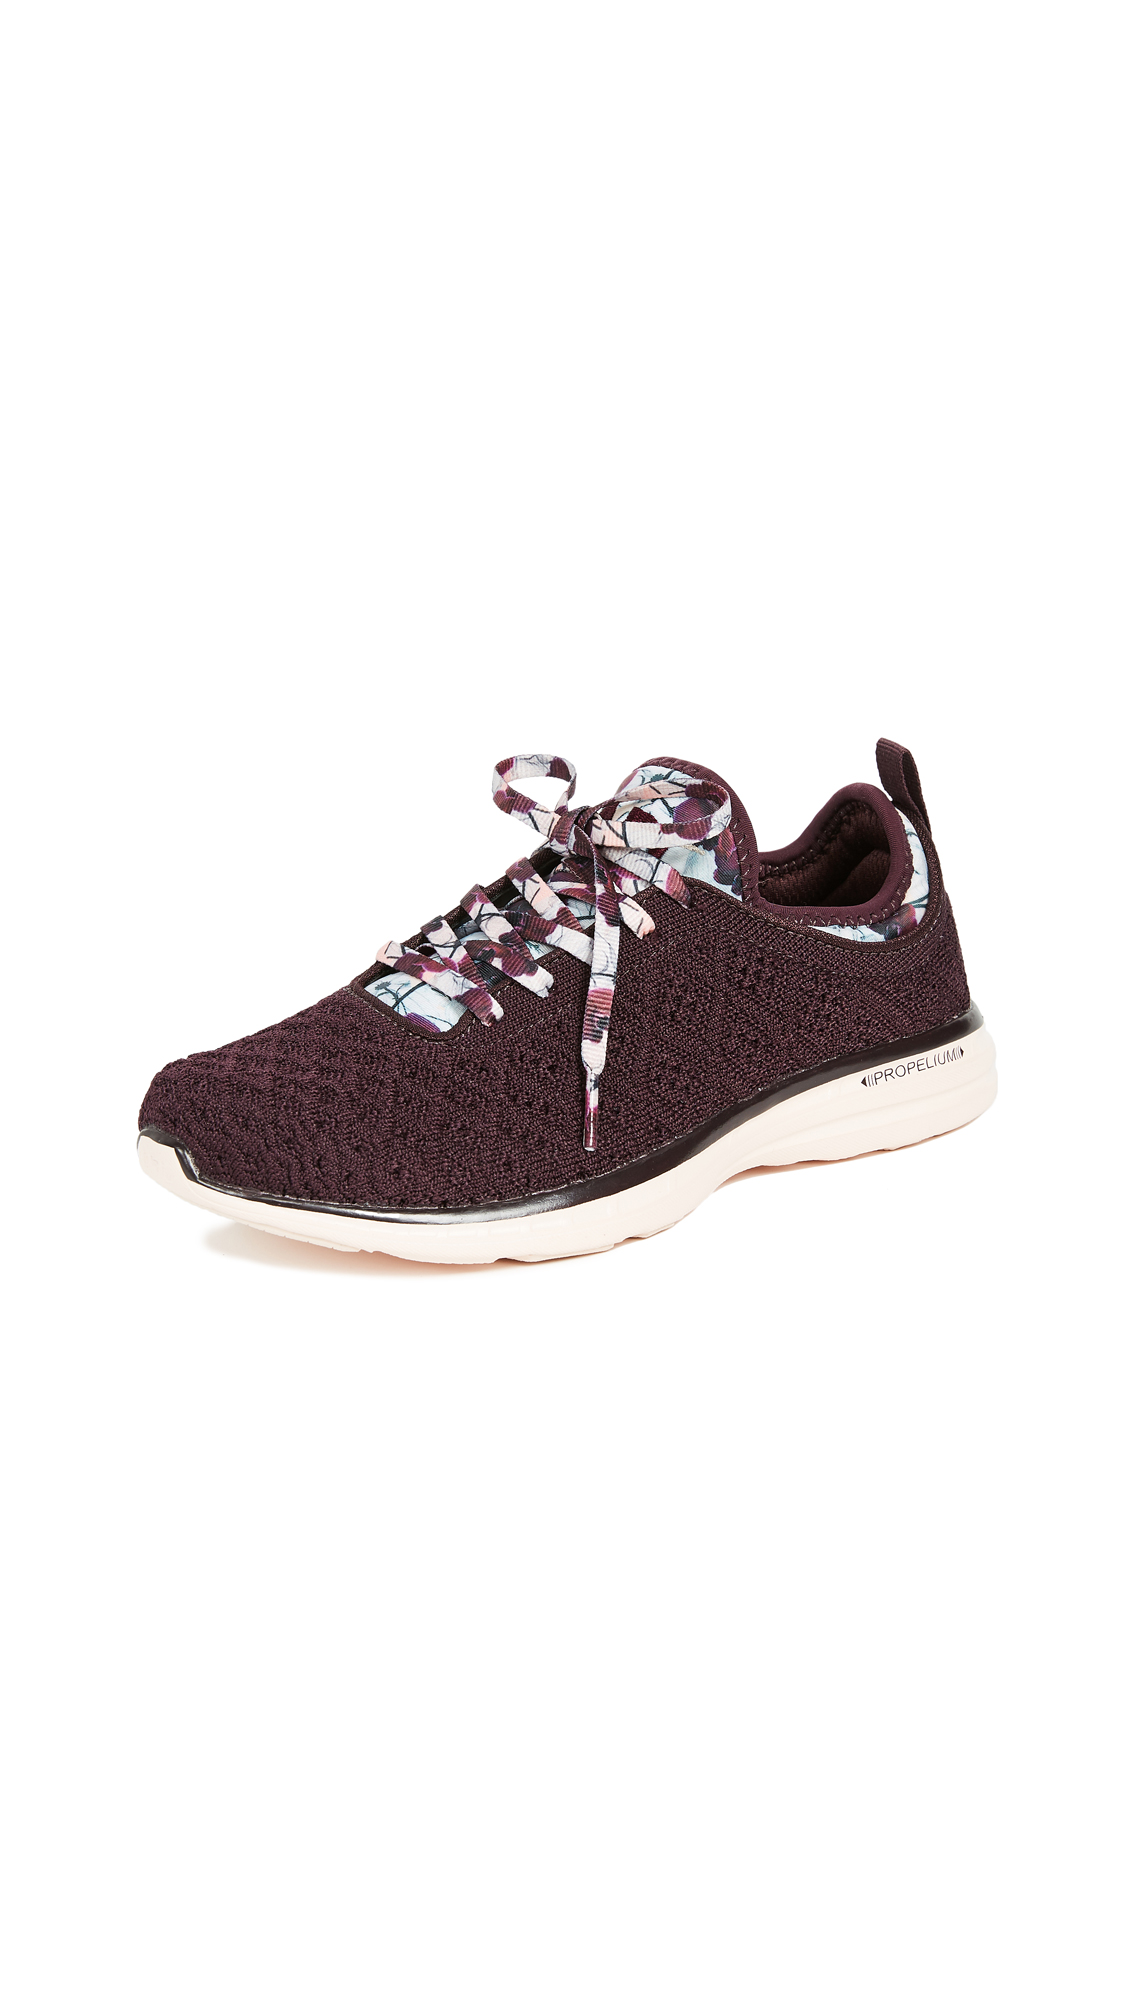 APL: Athletic Propulsion Labs TechLoom Phantom Sneakers - Plum/Opaque Peach